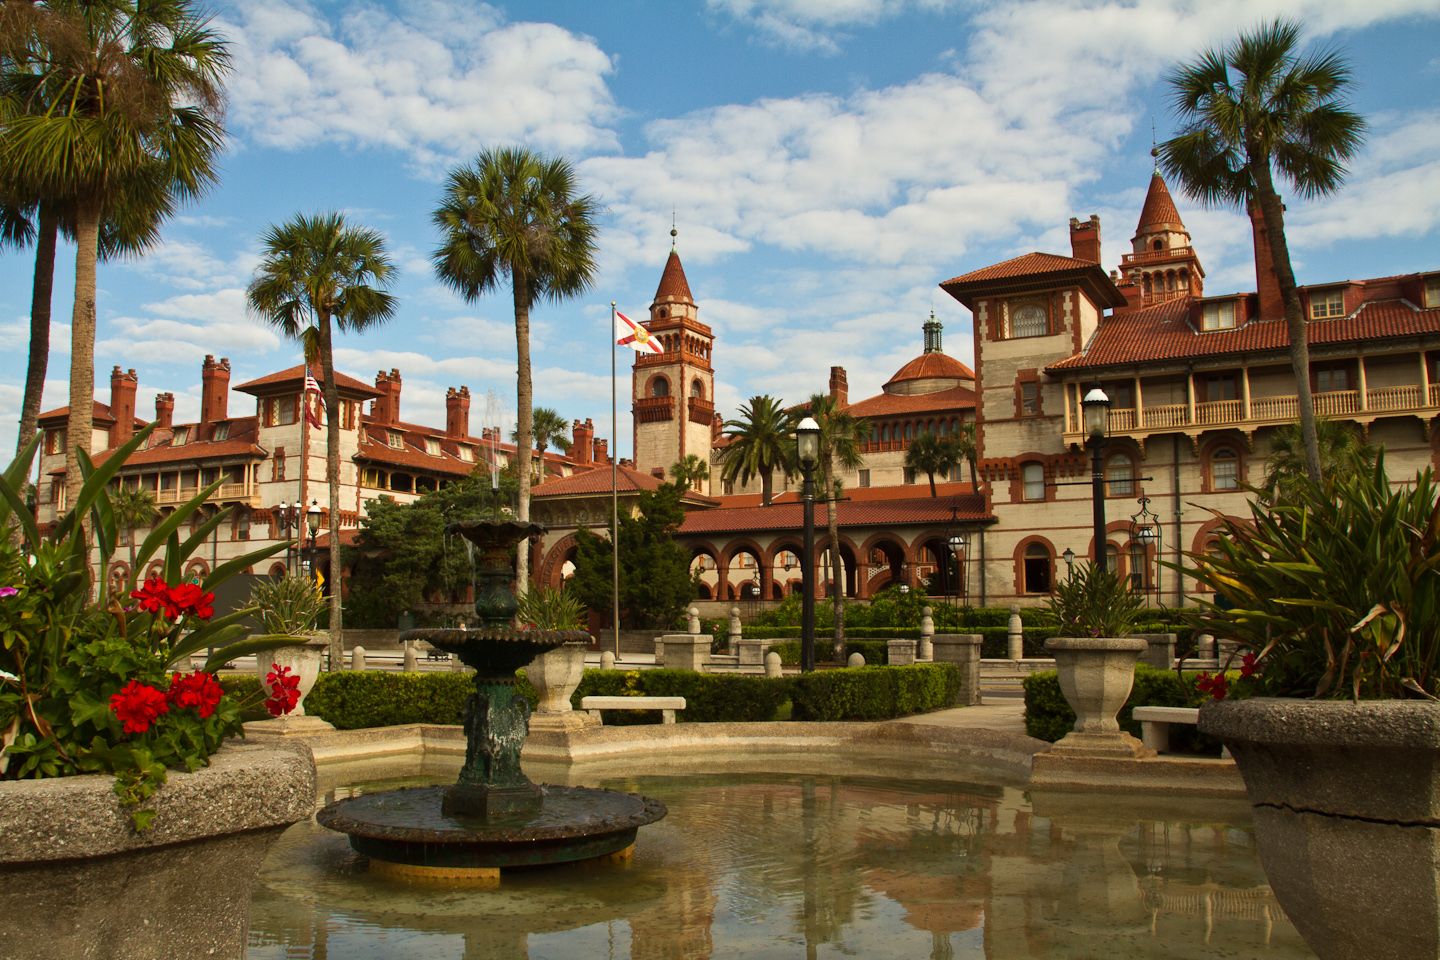 My Hometown: St. Augustine